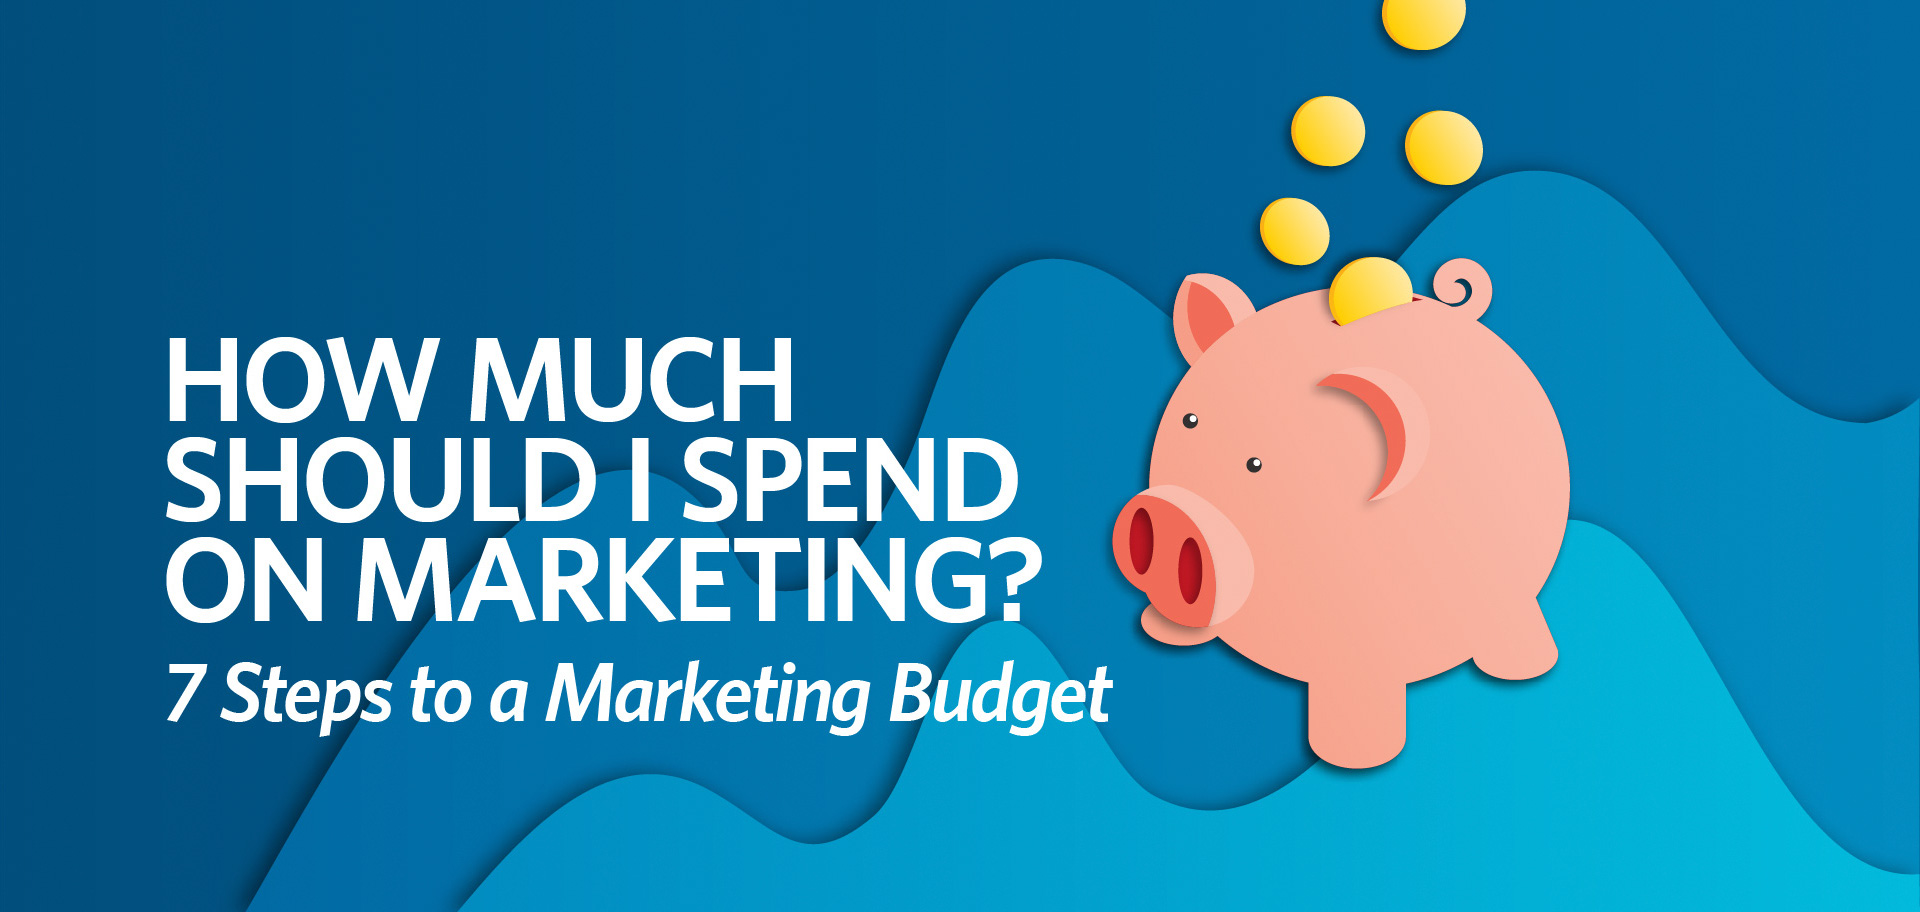 small business marketing budget how much should i spend on marketing Kettle Fire Creative marketing budget How much should I spend on marketing? 7 Steps to a Marketing Budget marketing budget fi